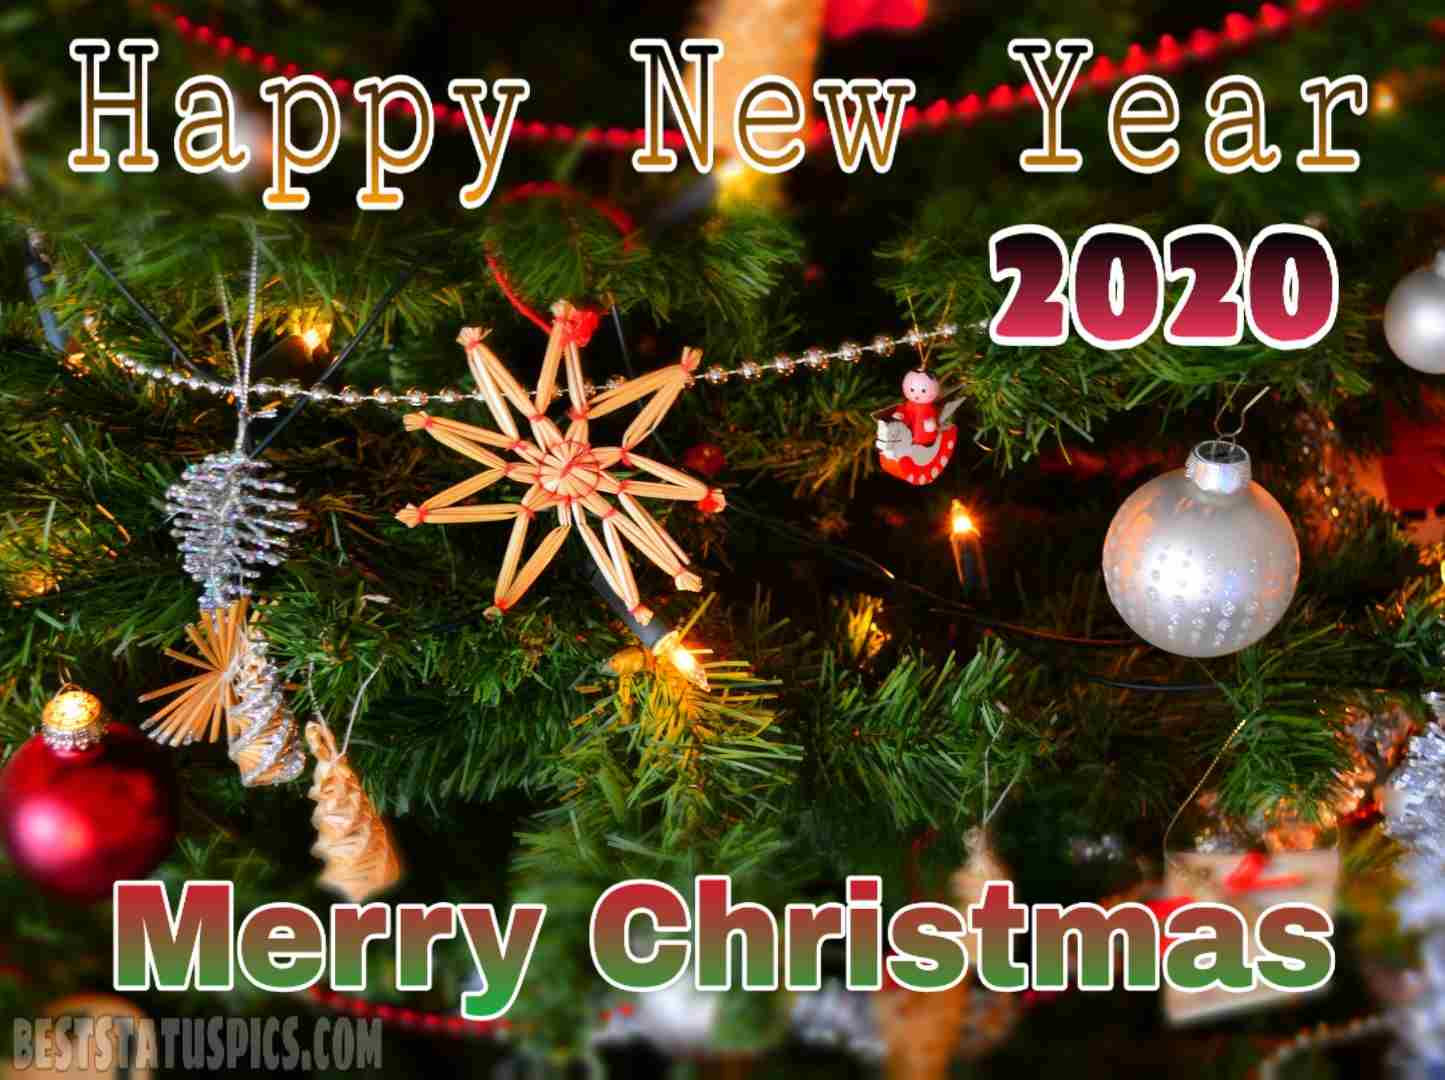 Merry Christmas Happy New Year 2020 Facebook Cover Whatsapp dp 1445x1080